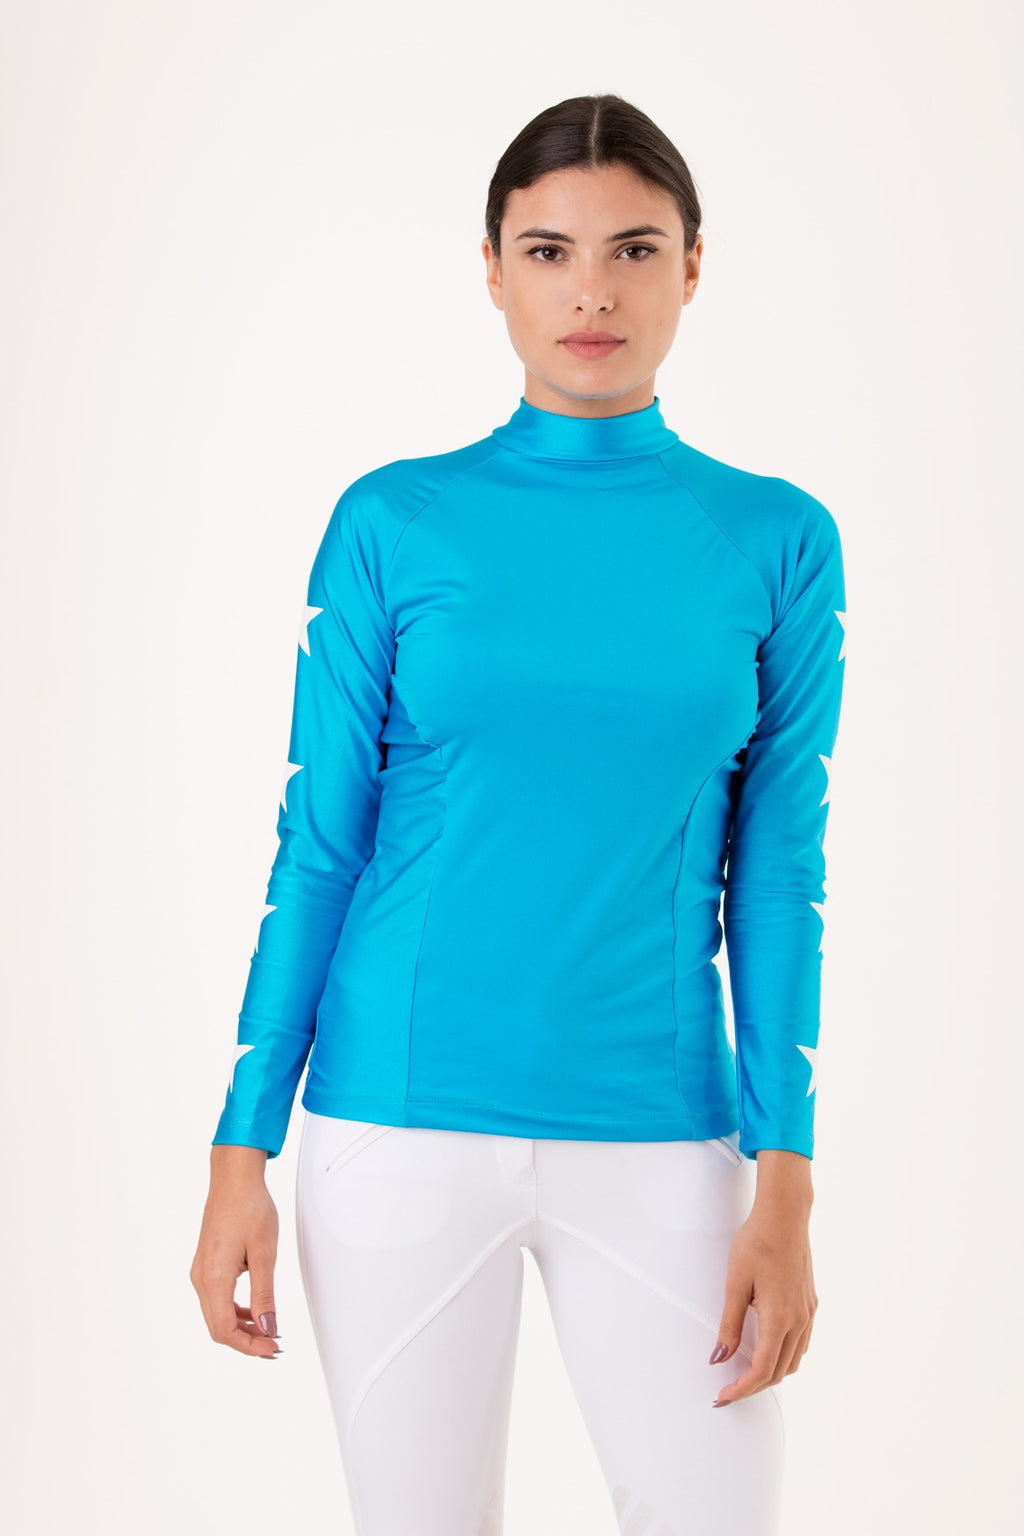 Teal & White Constellation Baselayer